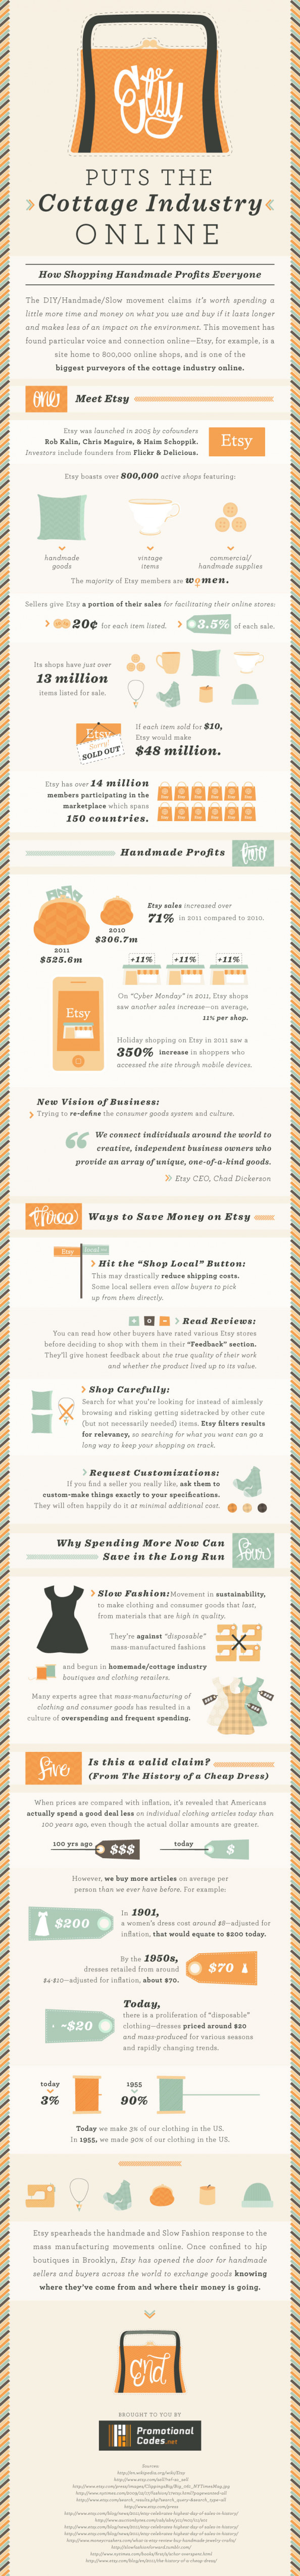 Etsy Puts the Cottage Industry Online Infographic